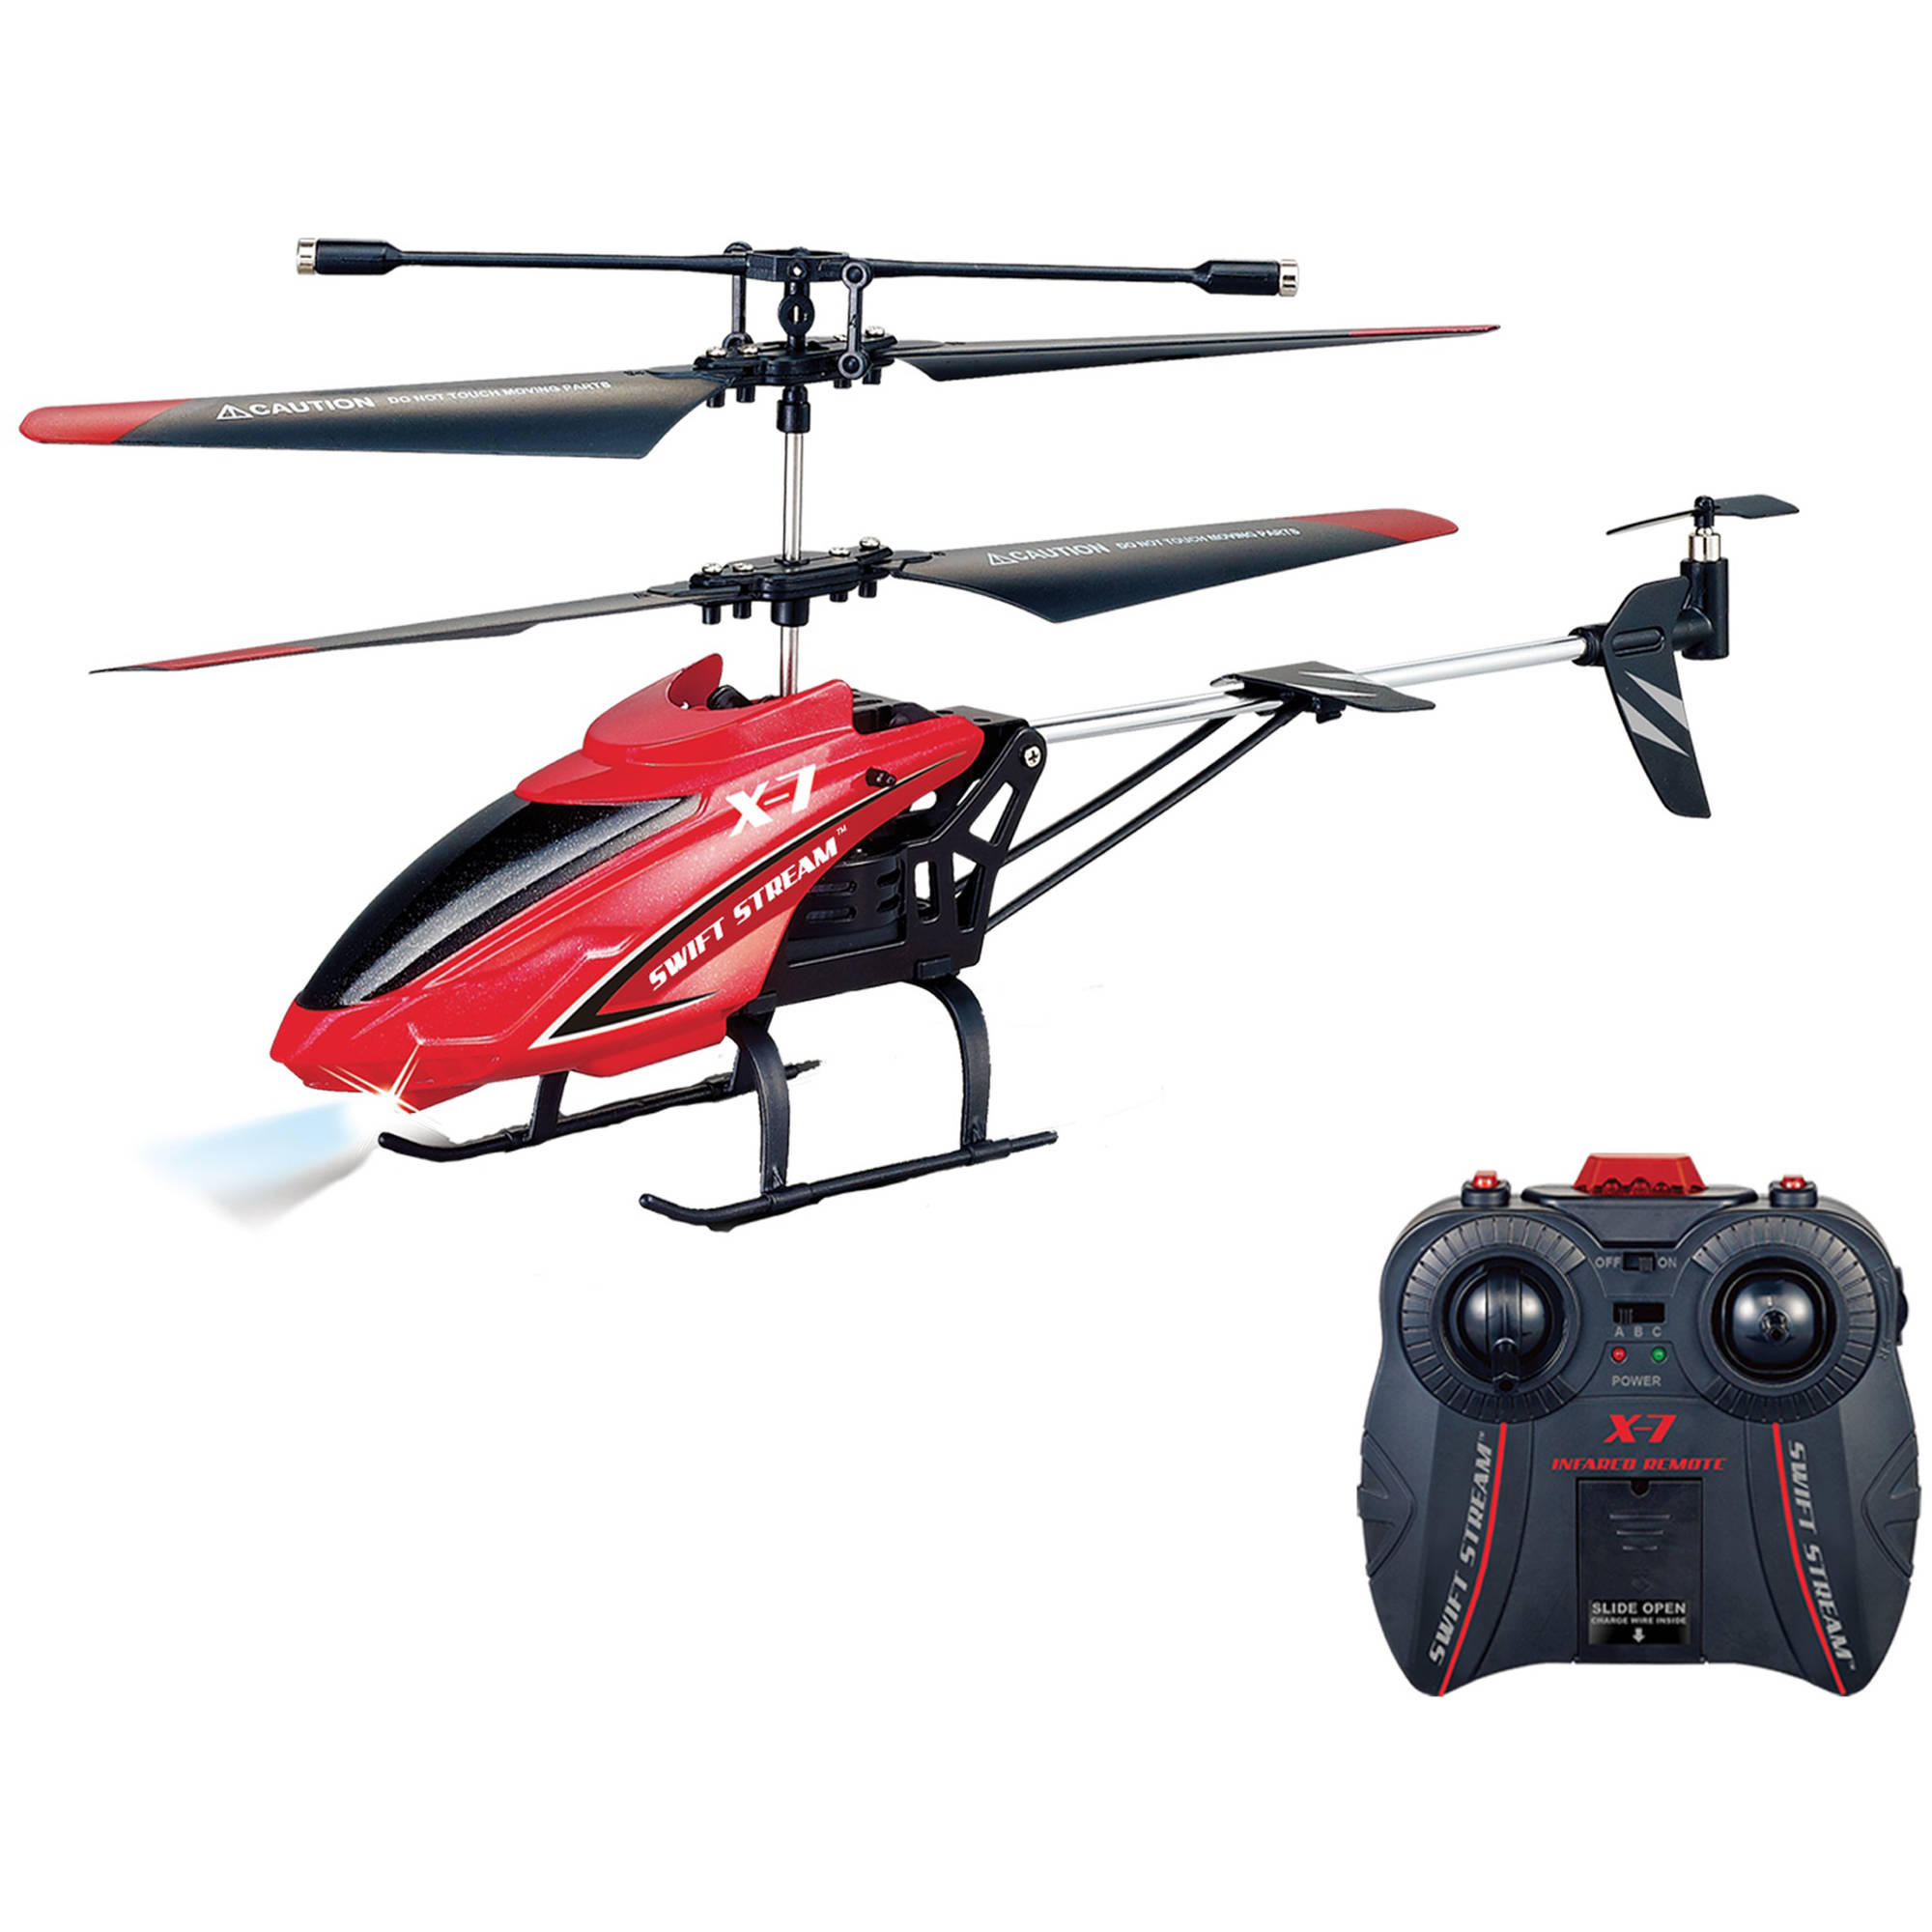 """Swift Stream X-7 Remote Control 9"""" Helicopter, Red by Abrim Enterprises, Inc."""